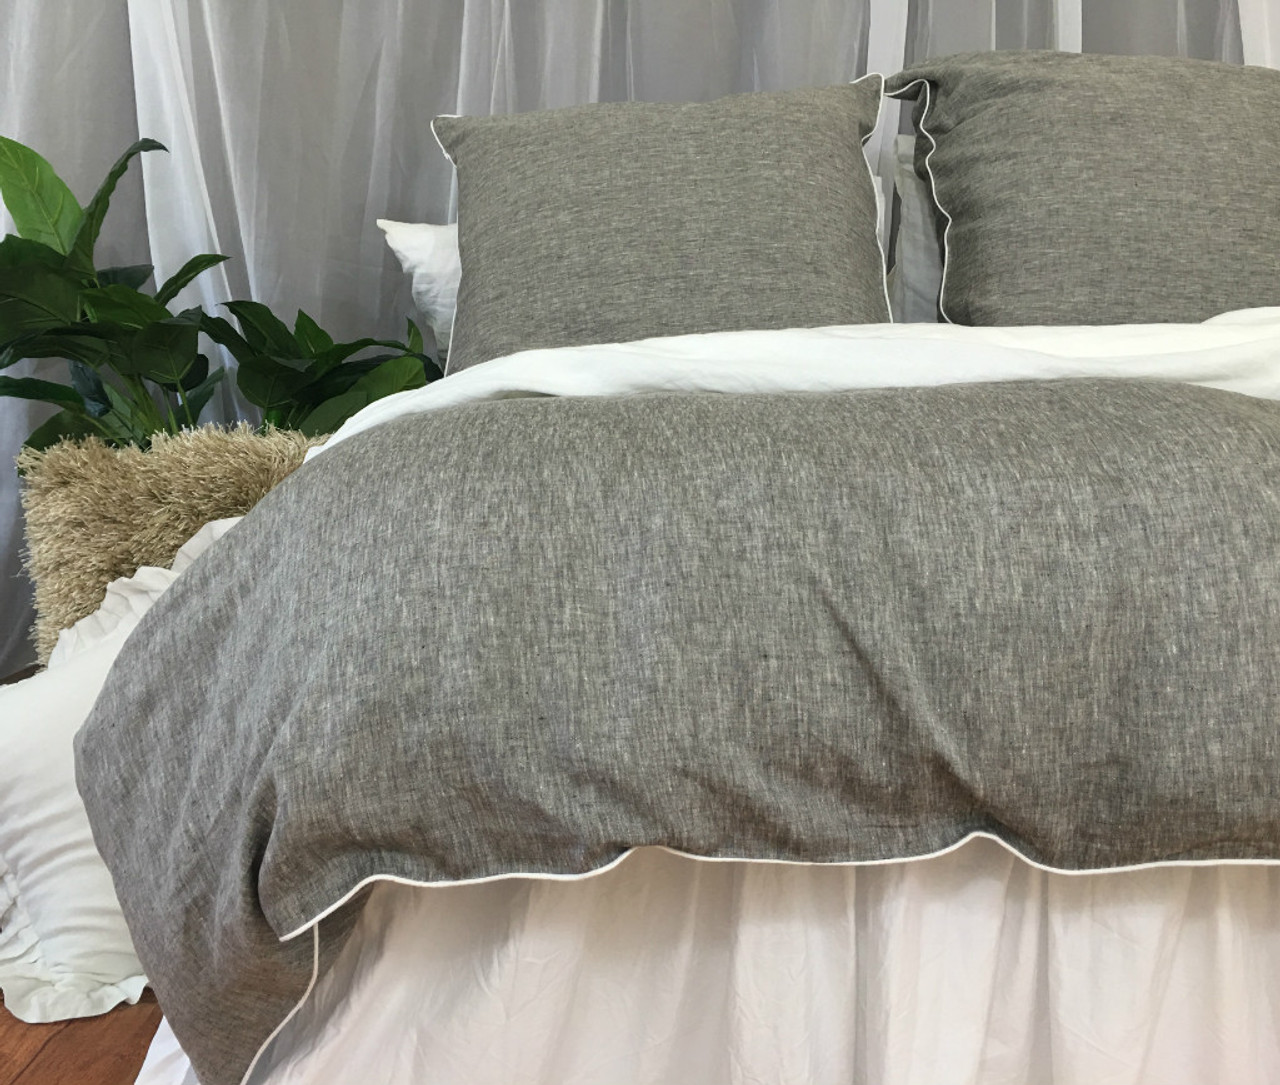 Soft Duvet Covers Chambray Grey Linen Duvet Cover With Soft White Piping